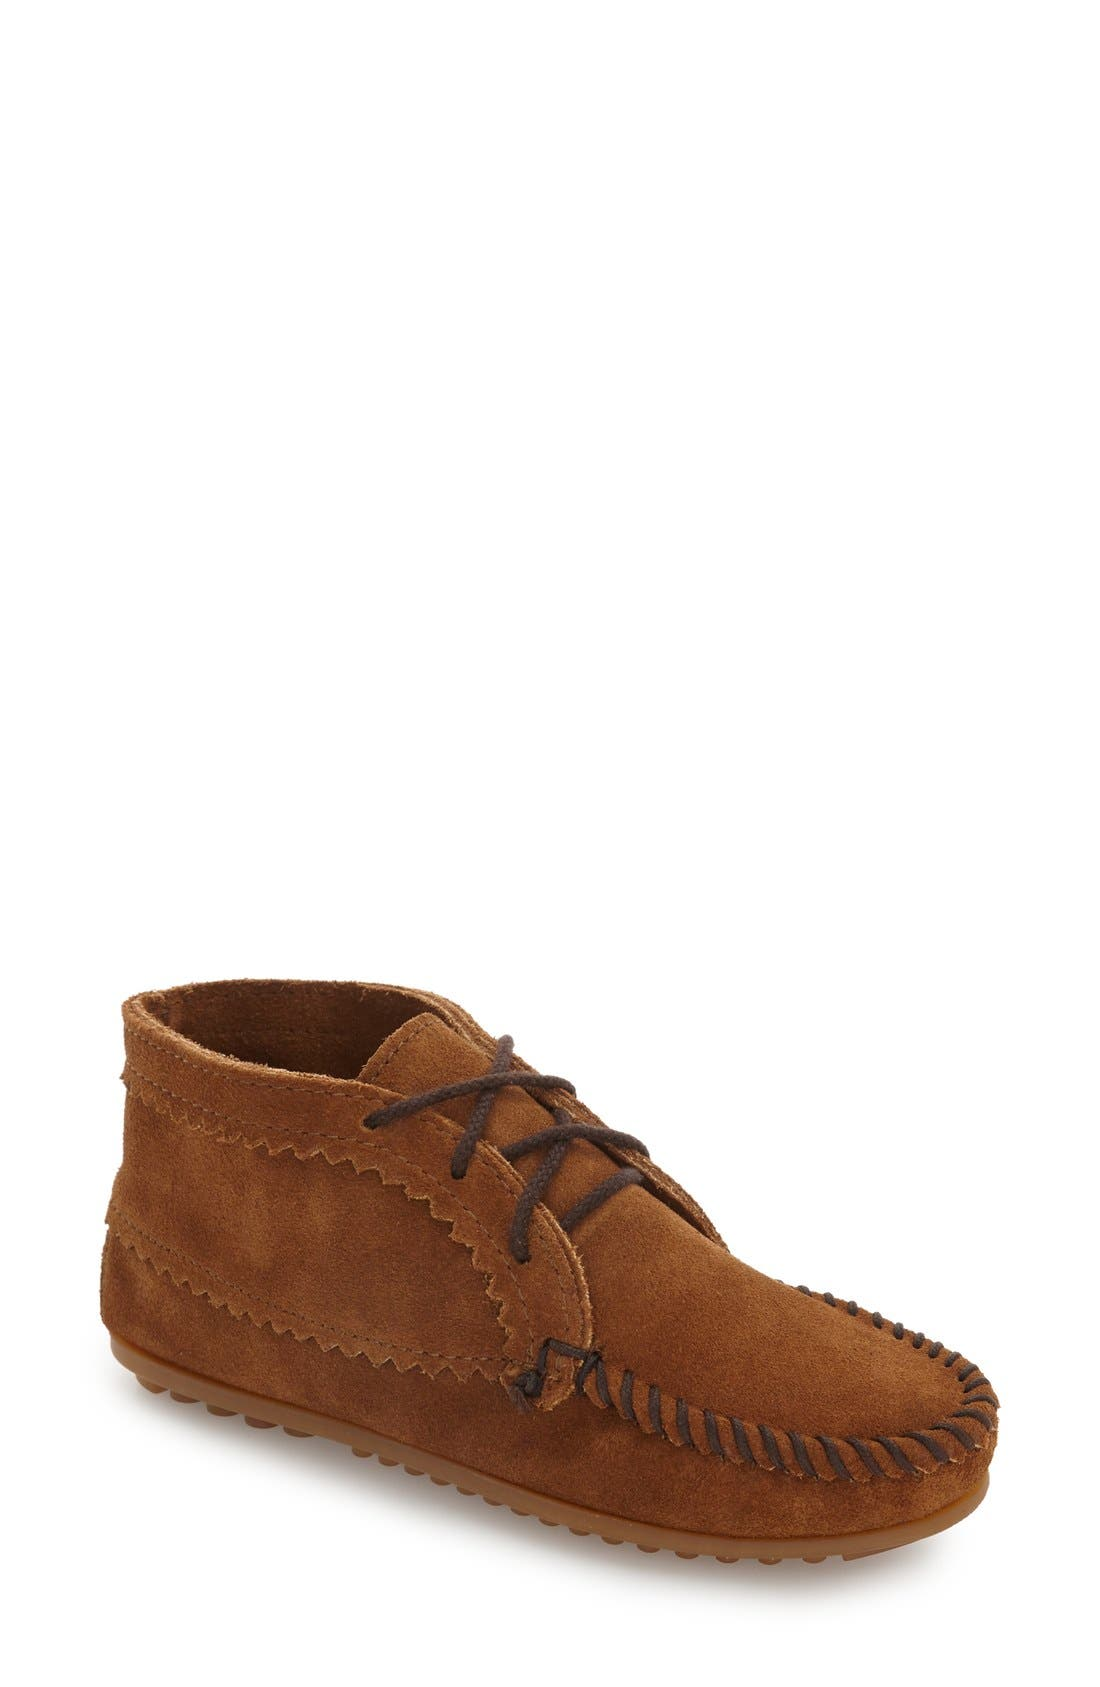 Alternate Image 1 Selected - Minnetonka Chukka Moccasin Boot (Women)